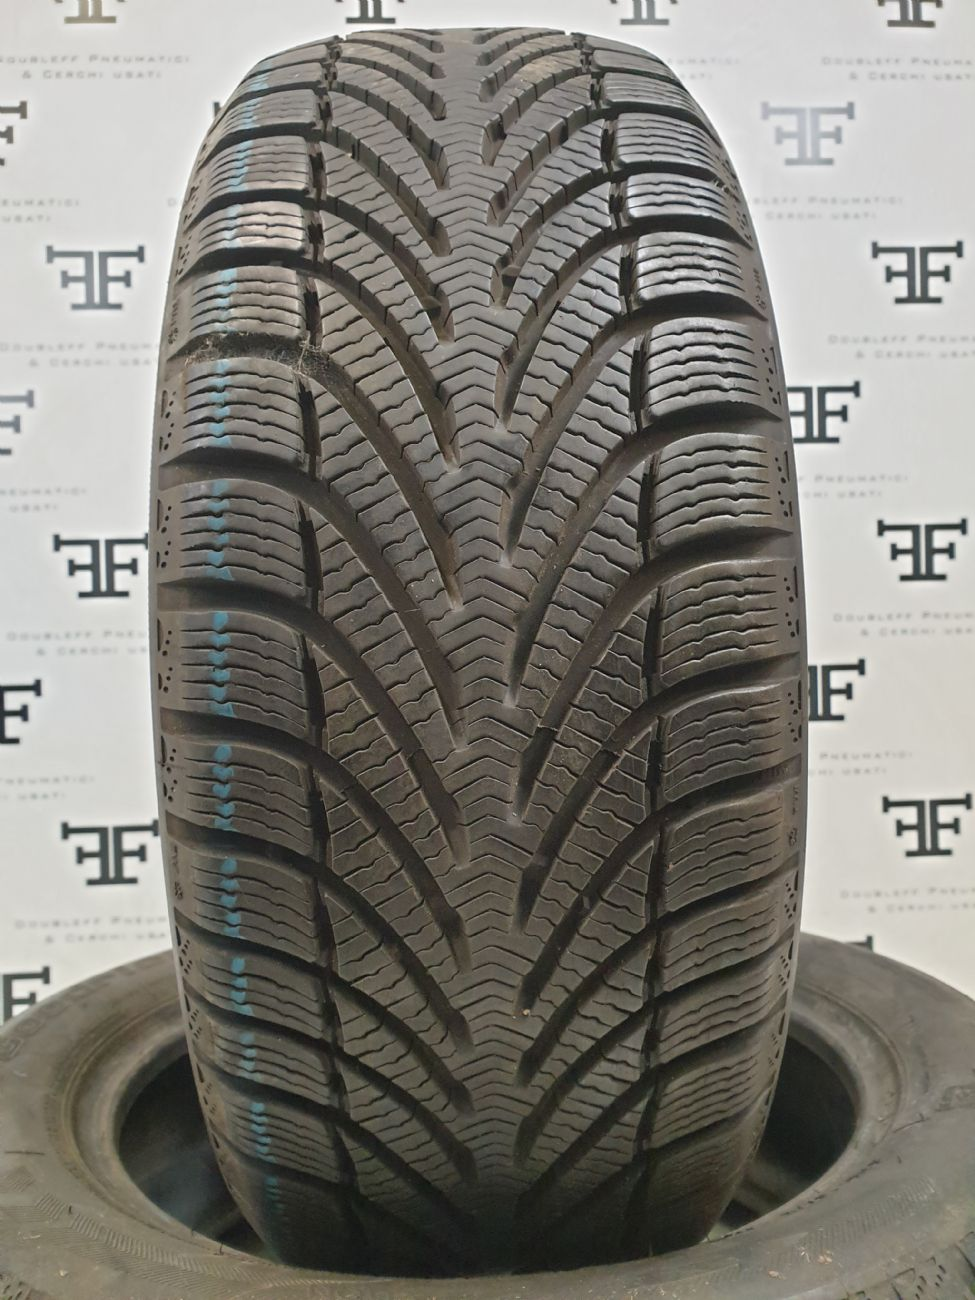 Pneumatici 205 55 R16 91 H BF GOODRICH G FORCE WINTER invernale DEMONTÉ usati 100€